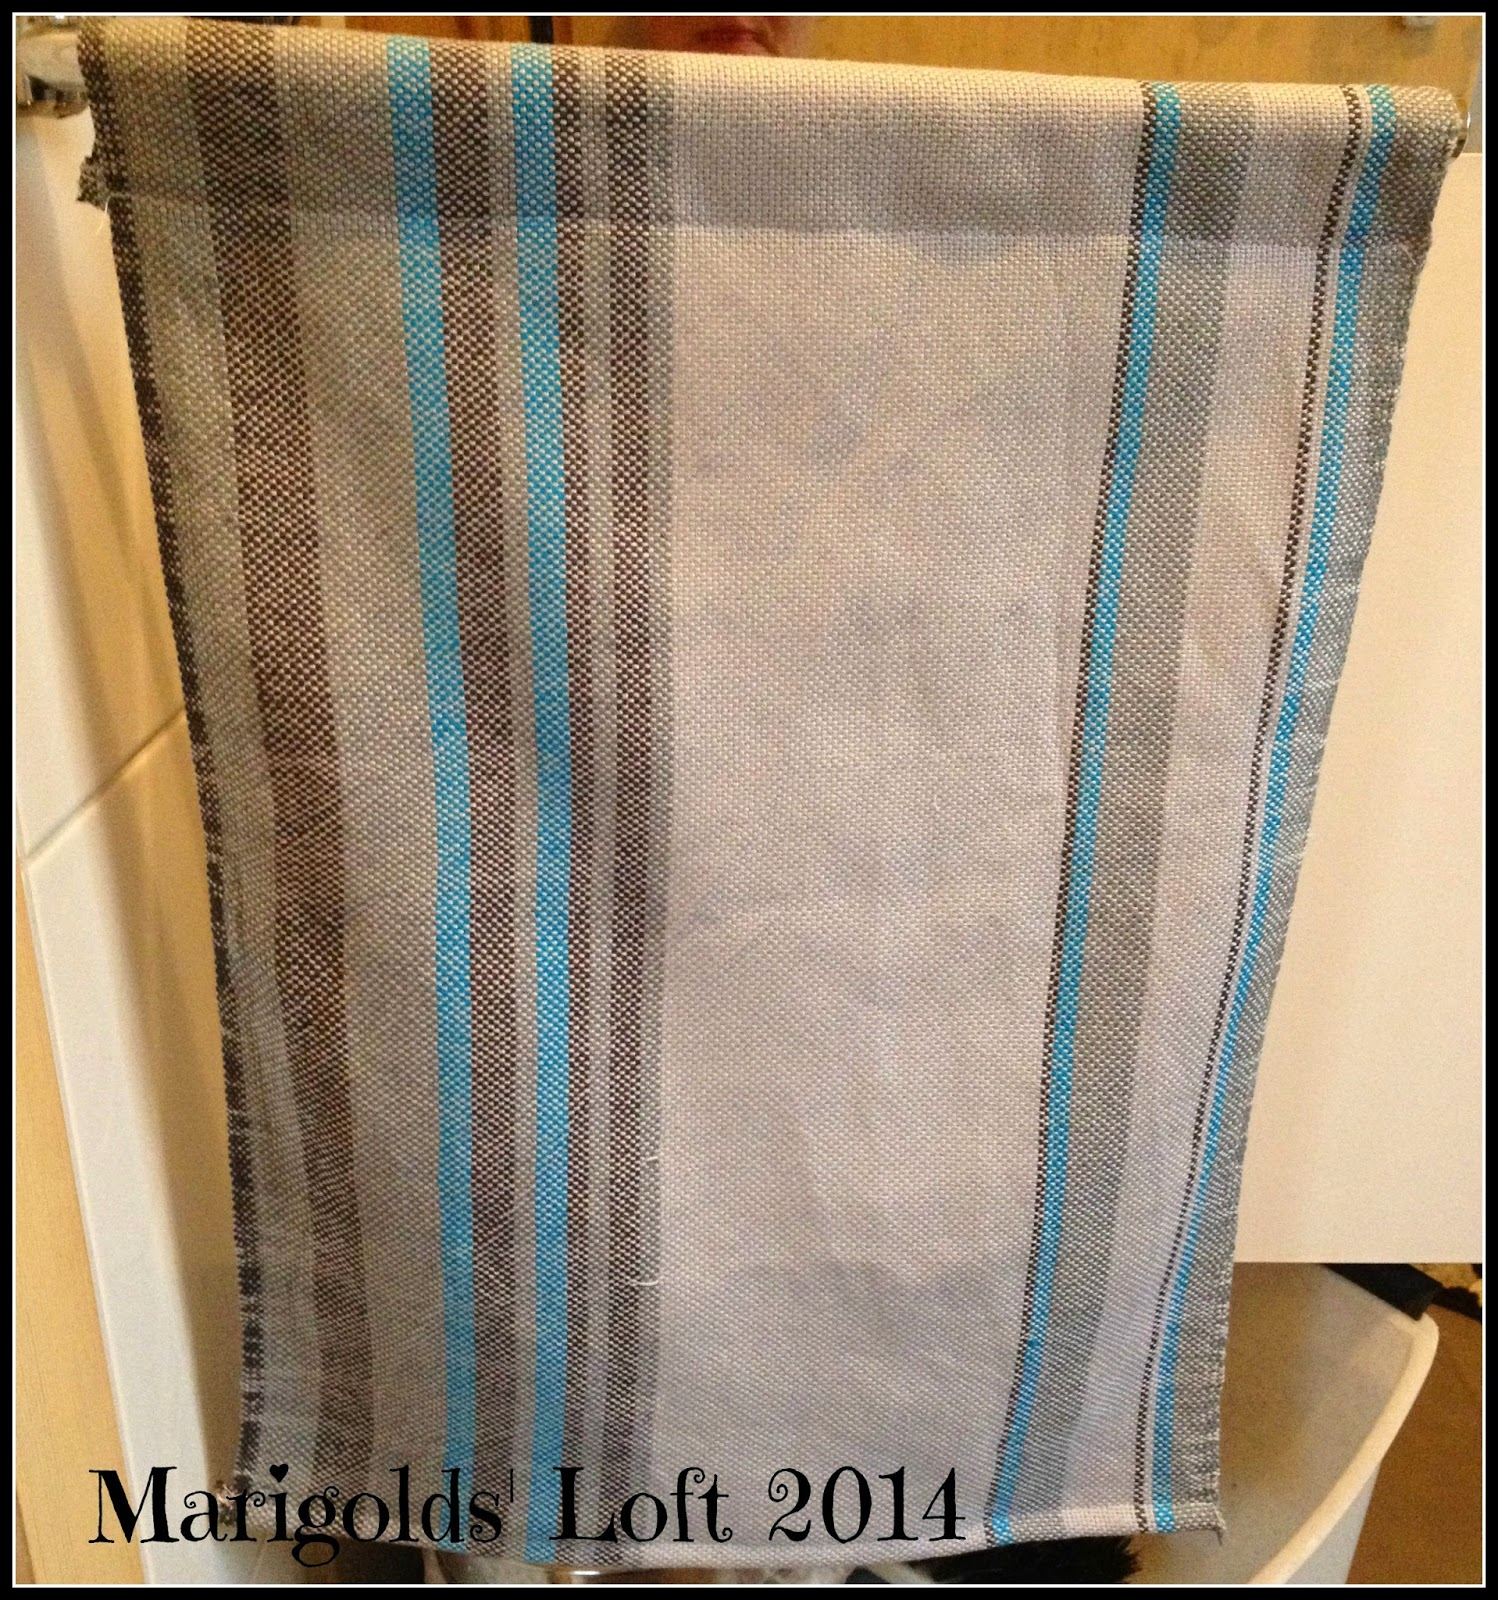 woven hand towel